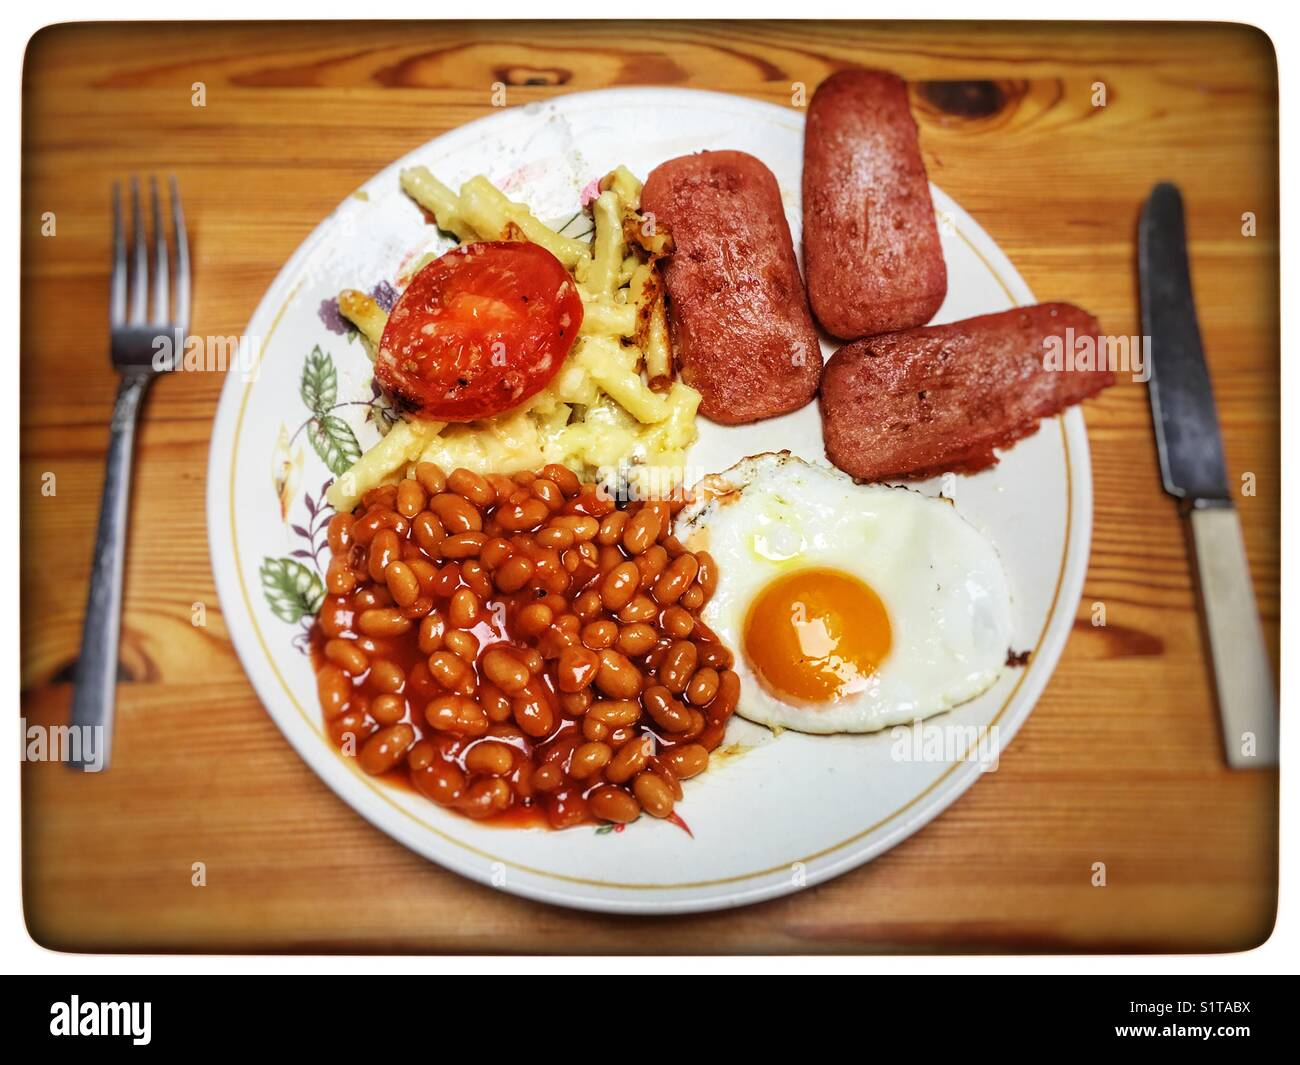 Spam fritters, macaroni cheese, fried egg and baked beans. - Stock Image